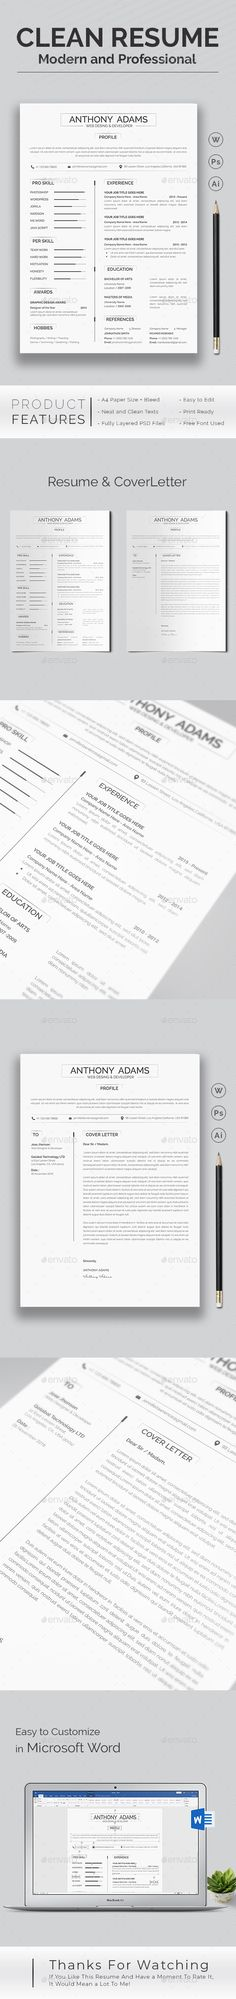 How To Make A Resume With Word New Resume Word Template  Cv Template With Super Clean And Modern Look .